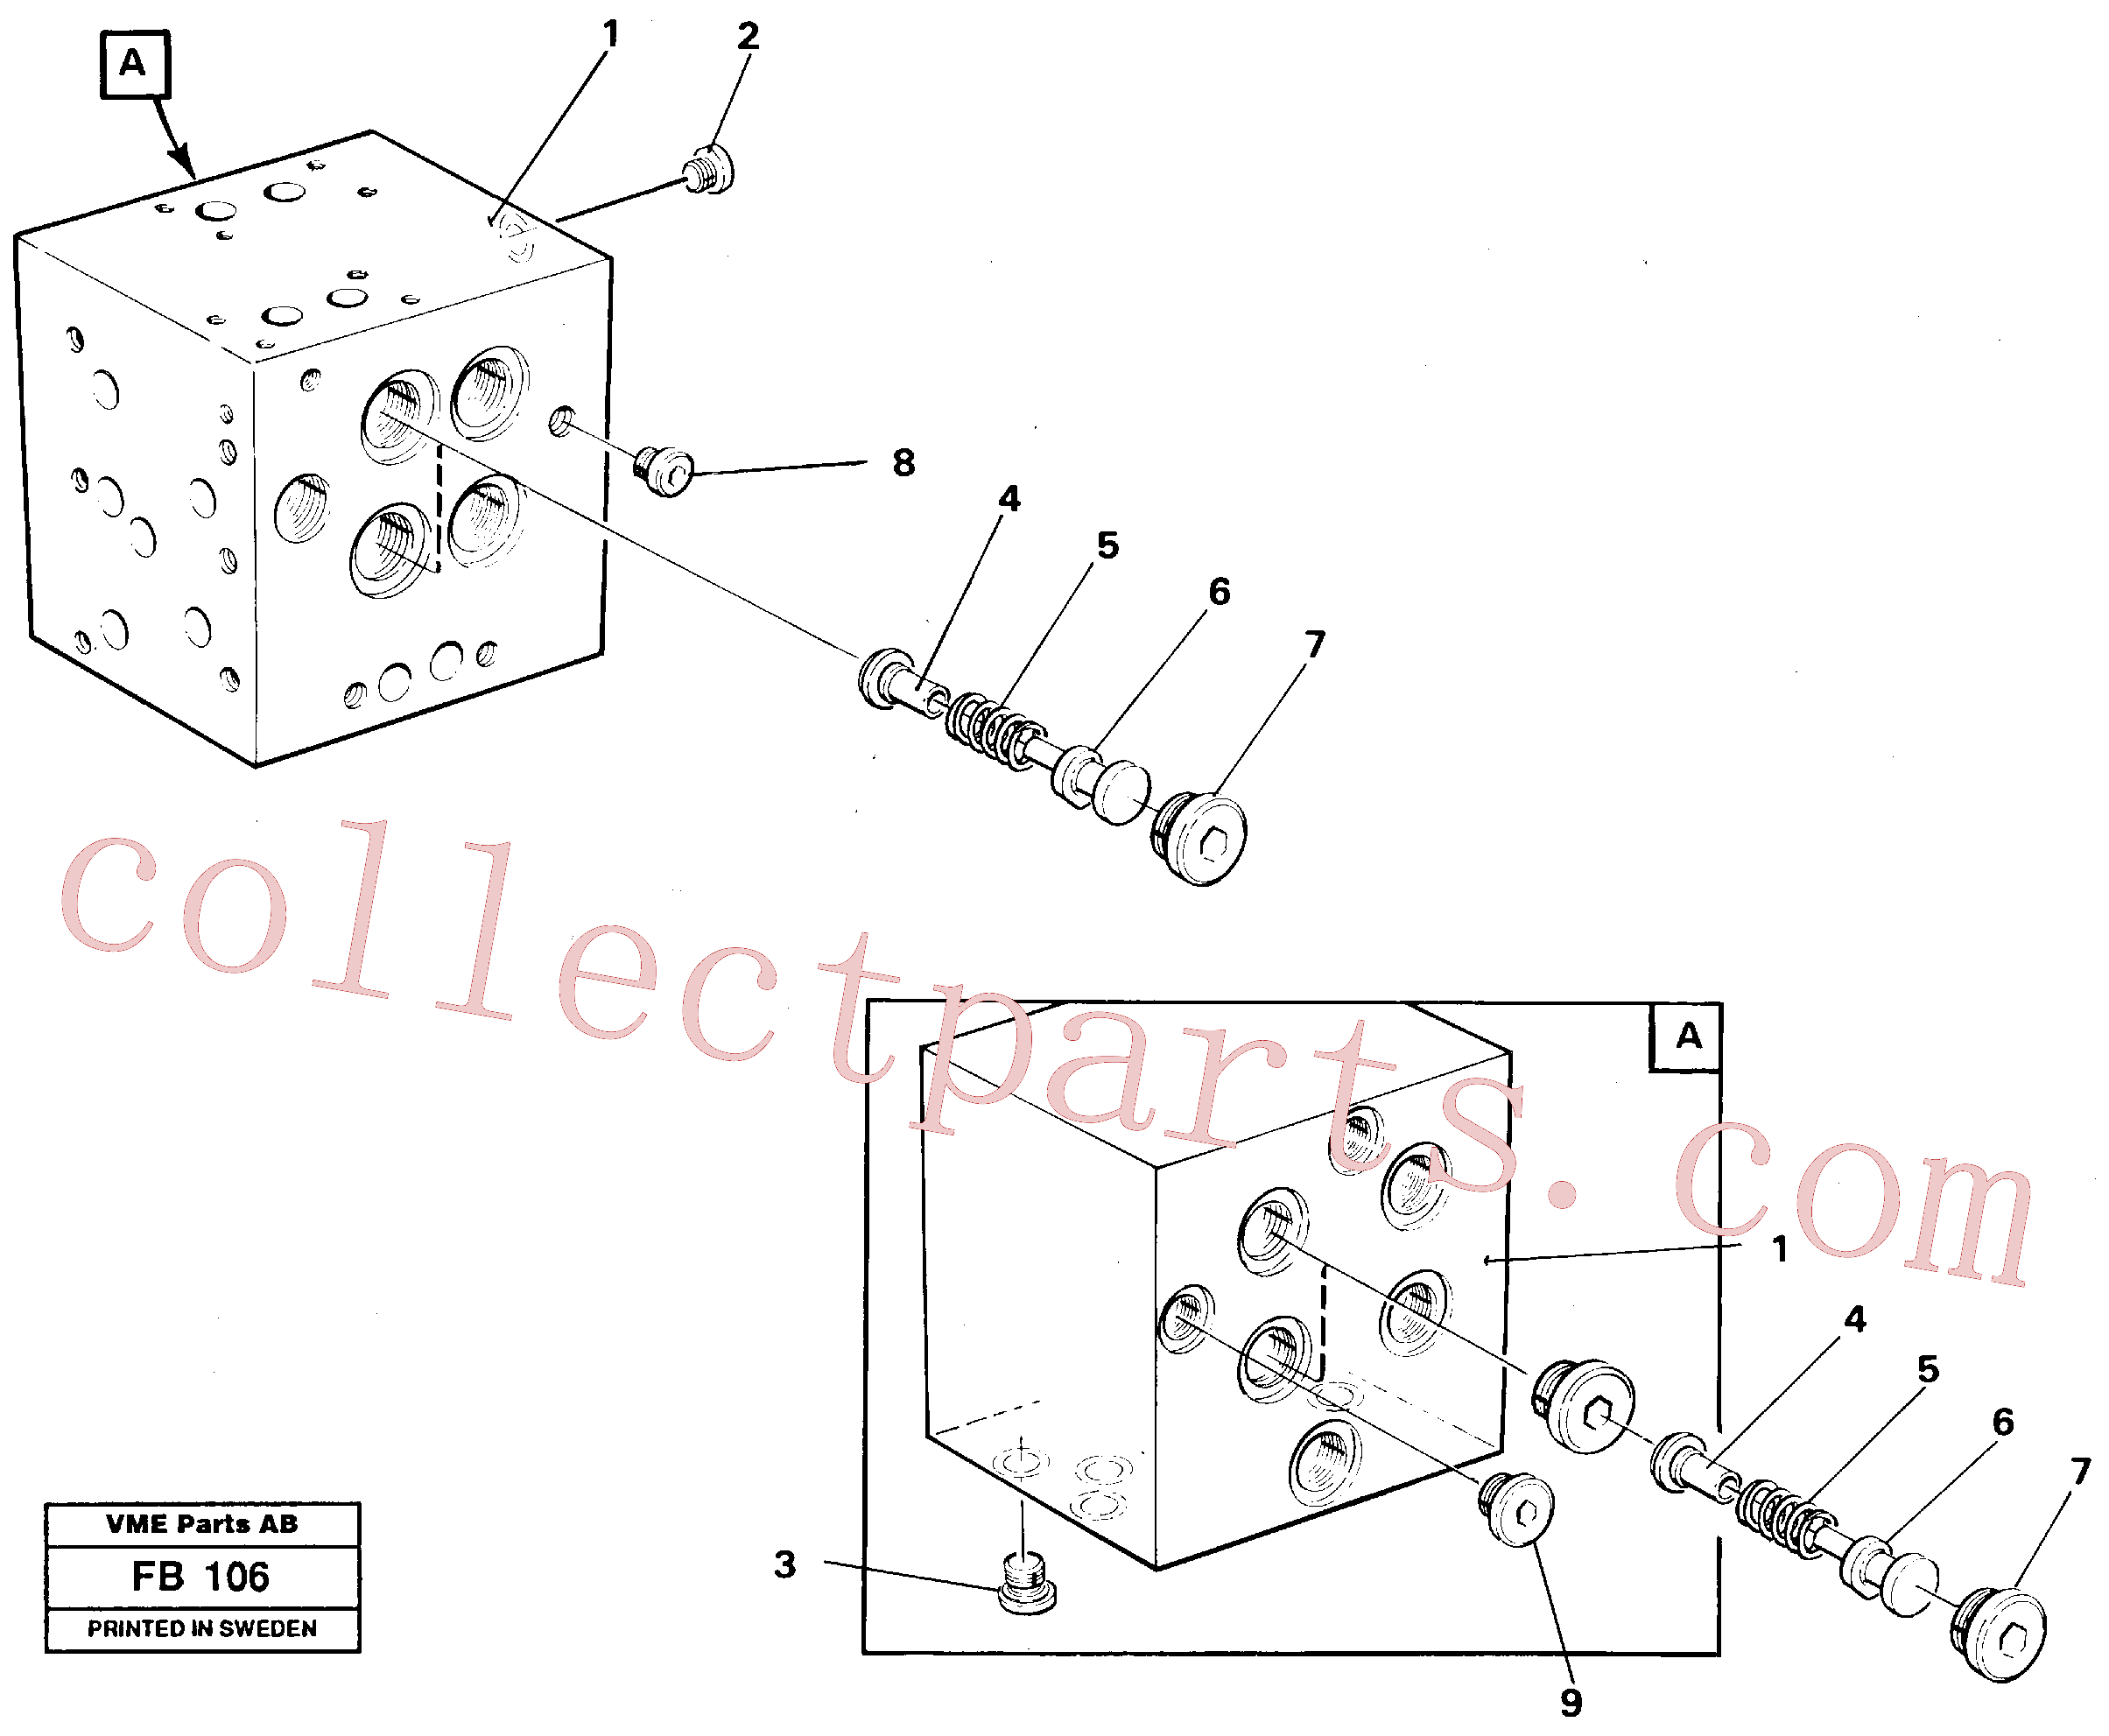 VOE14049795 for Volvo Slew valve block(FB106 assembly)